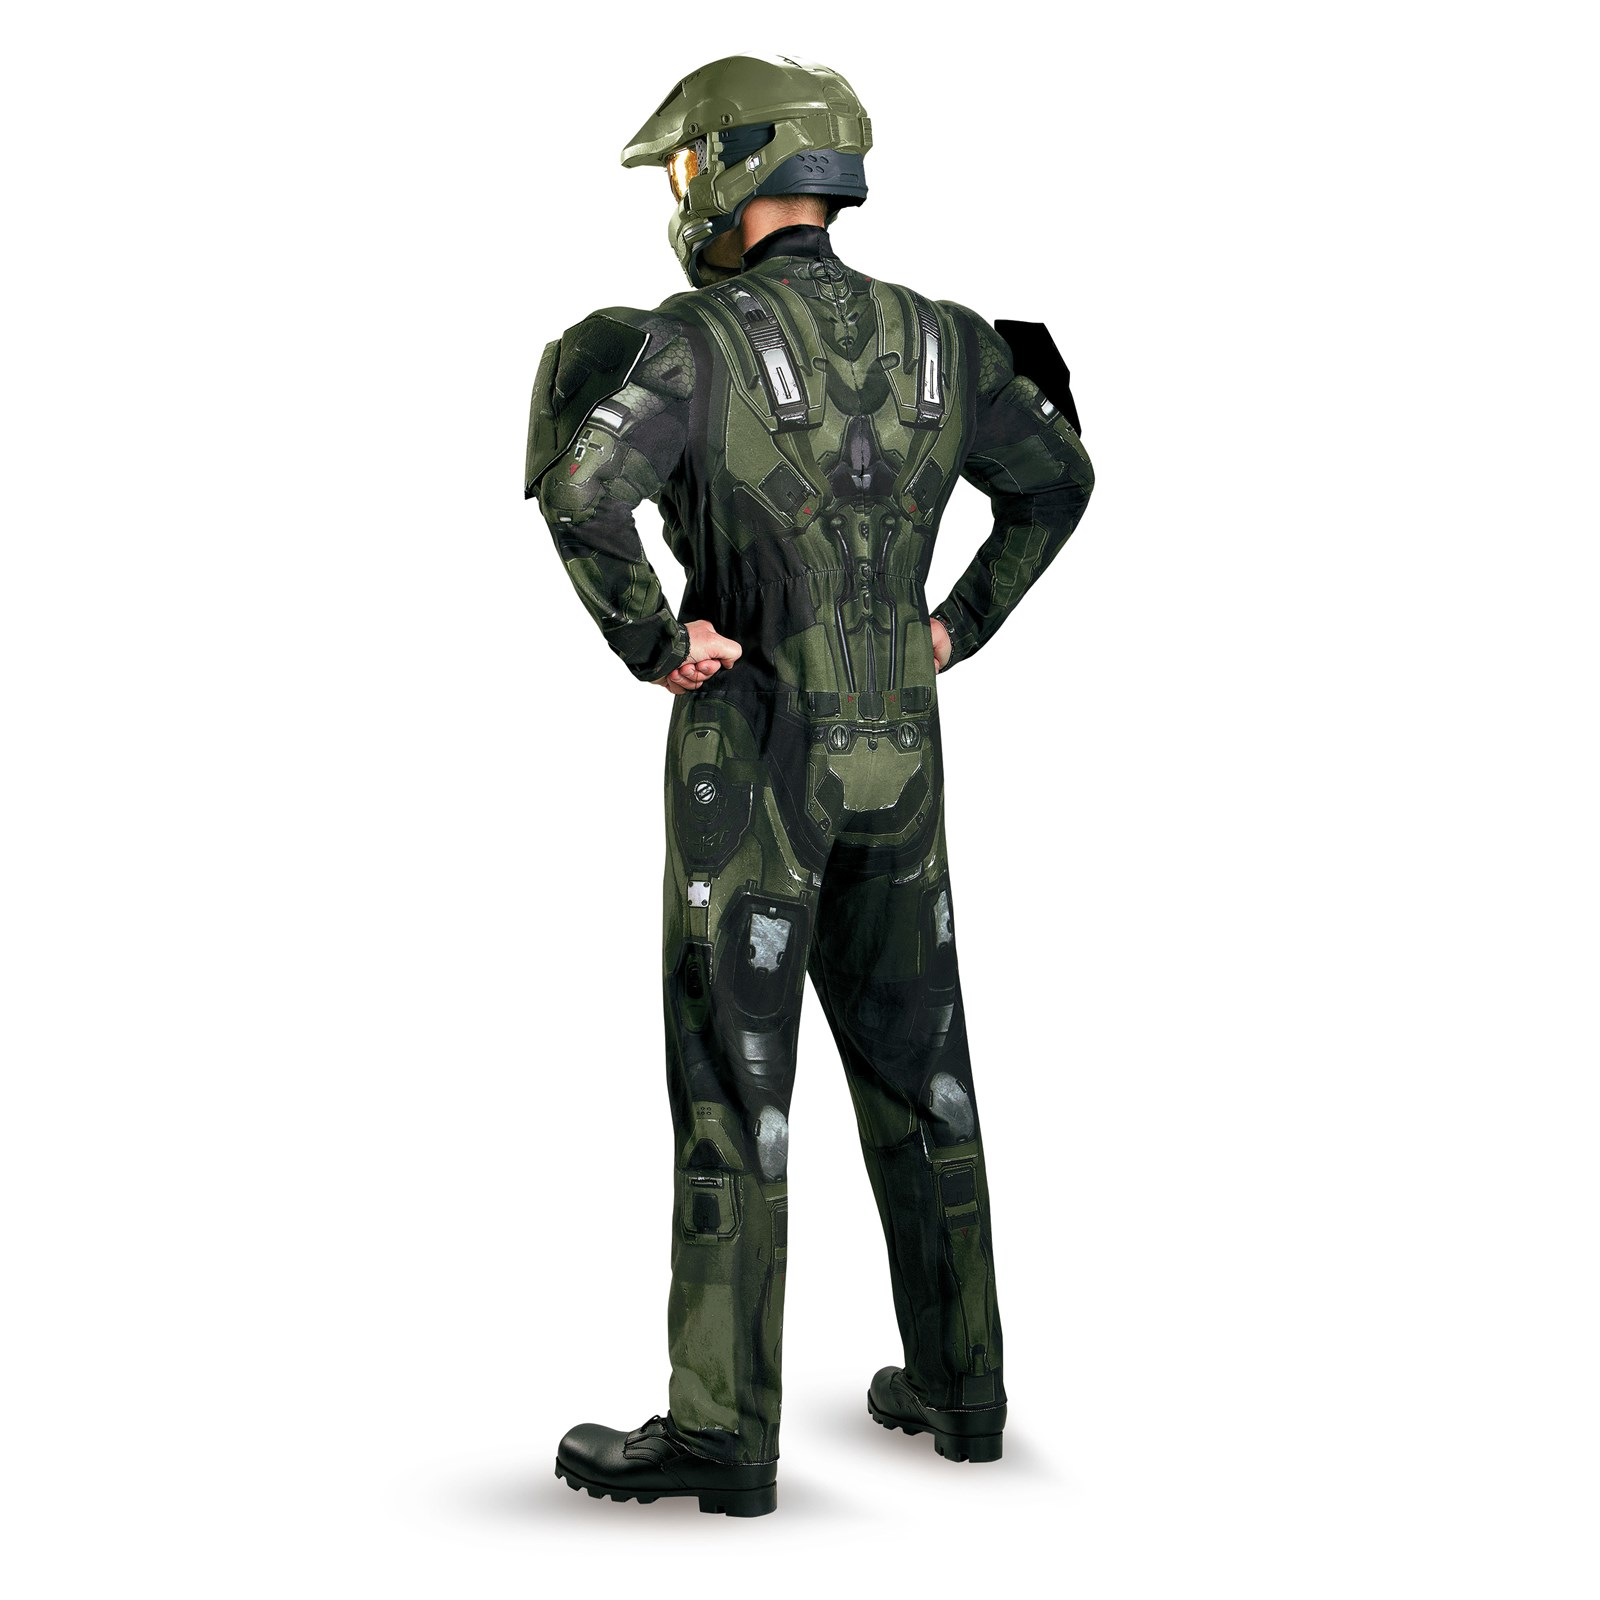 halo 3 deluxe master chief adult costume buycostumescom halo 3 deluxe master chief adult costume buycostumes com - Halo Reach Halloween Costume